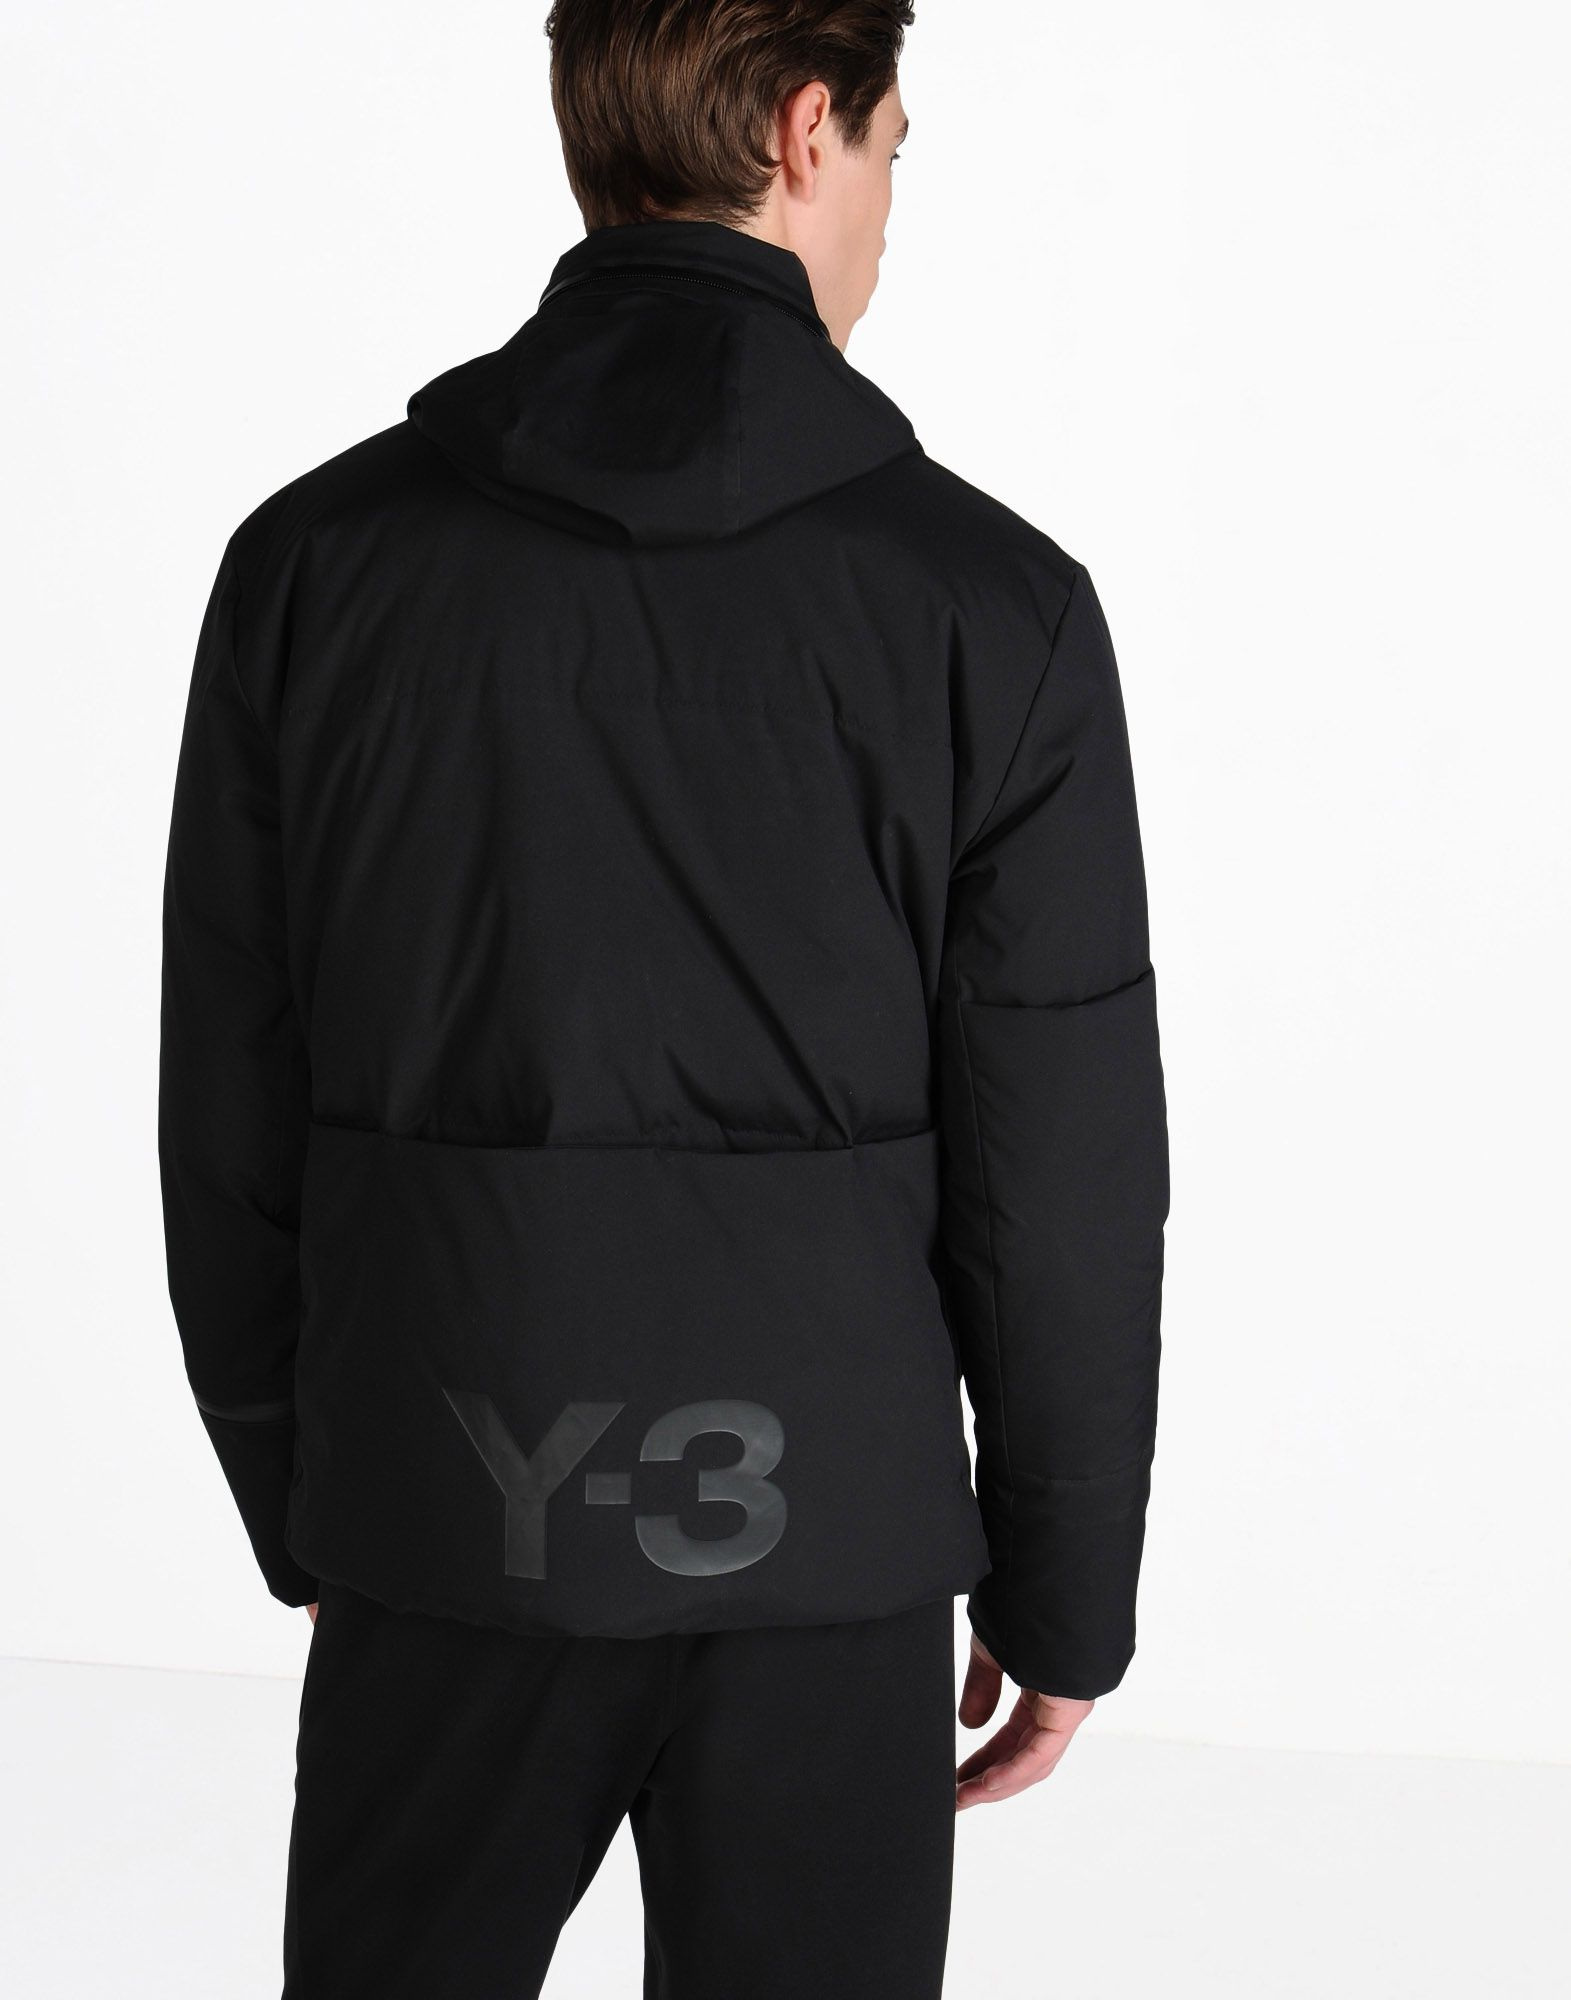 Y 3 MATTE DOWN JACKET Jackets for Men | Y-3.com